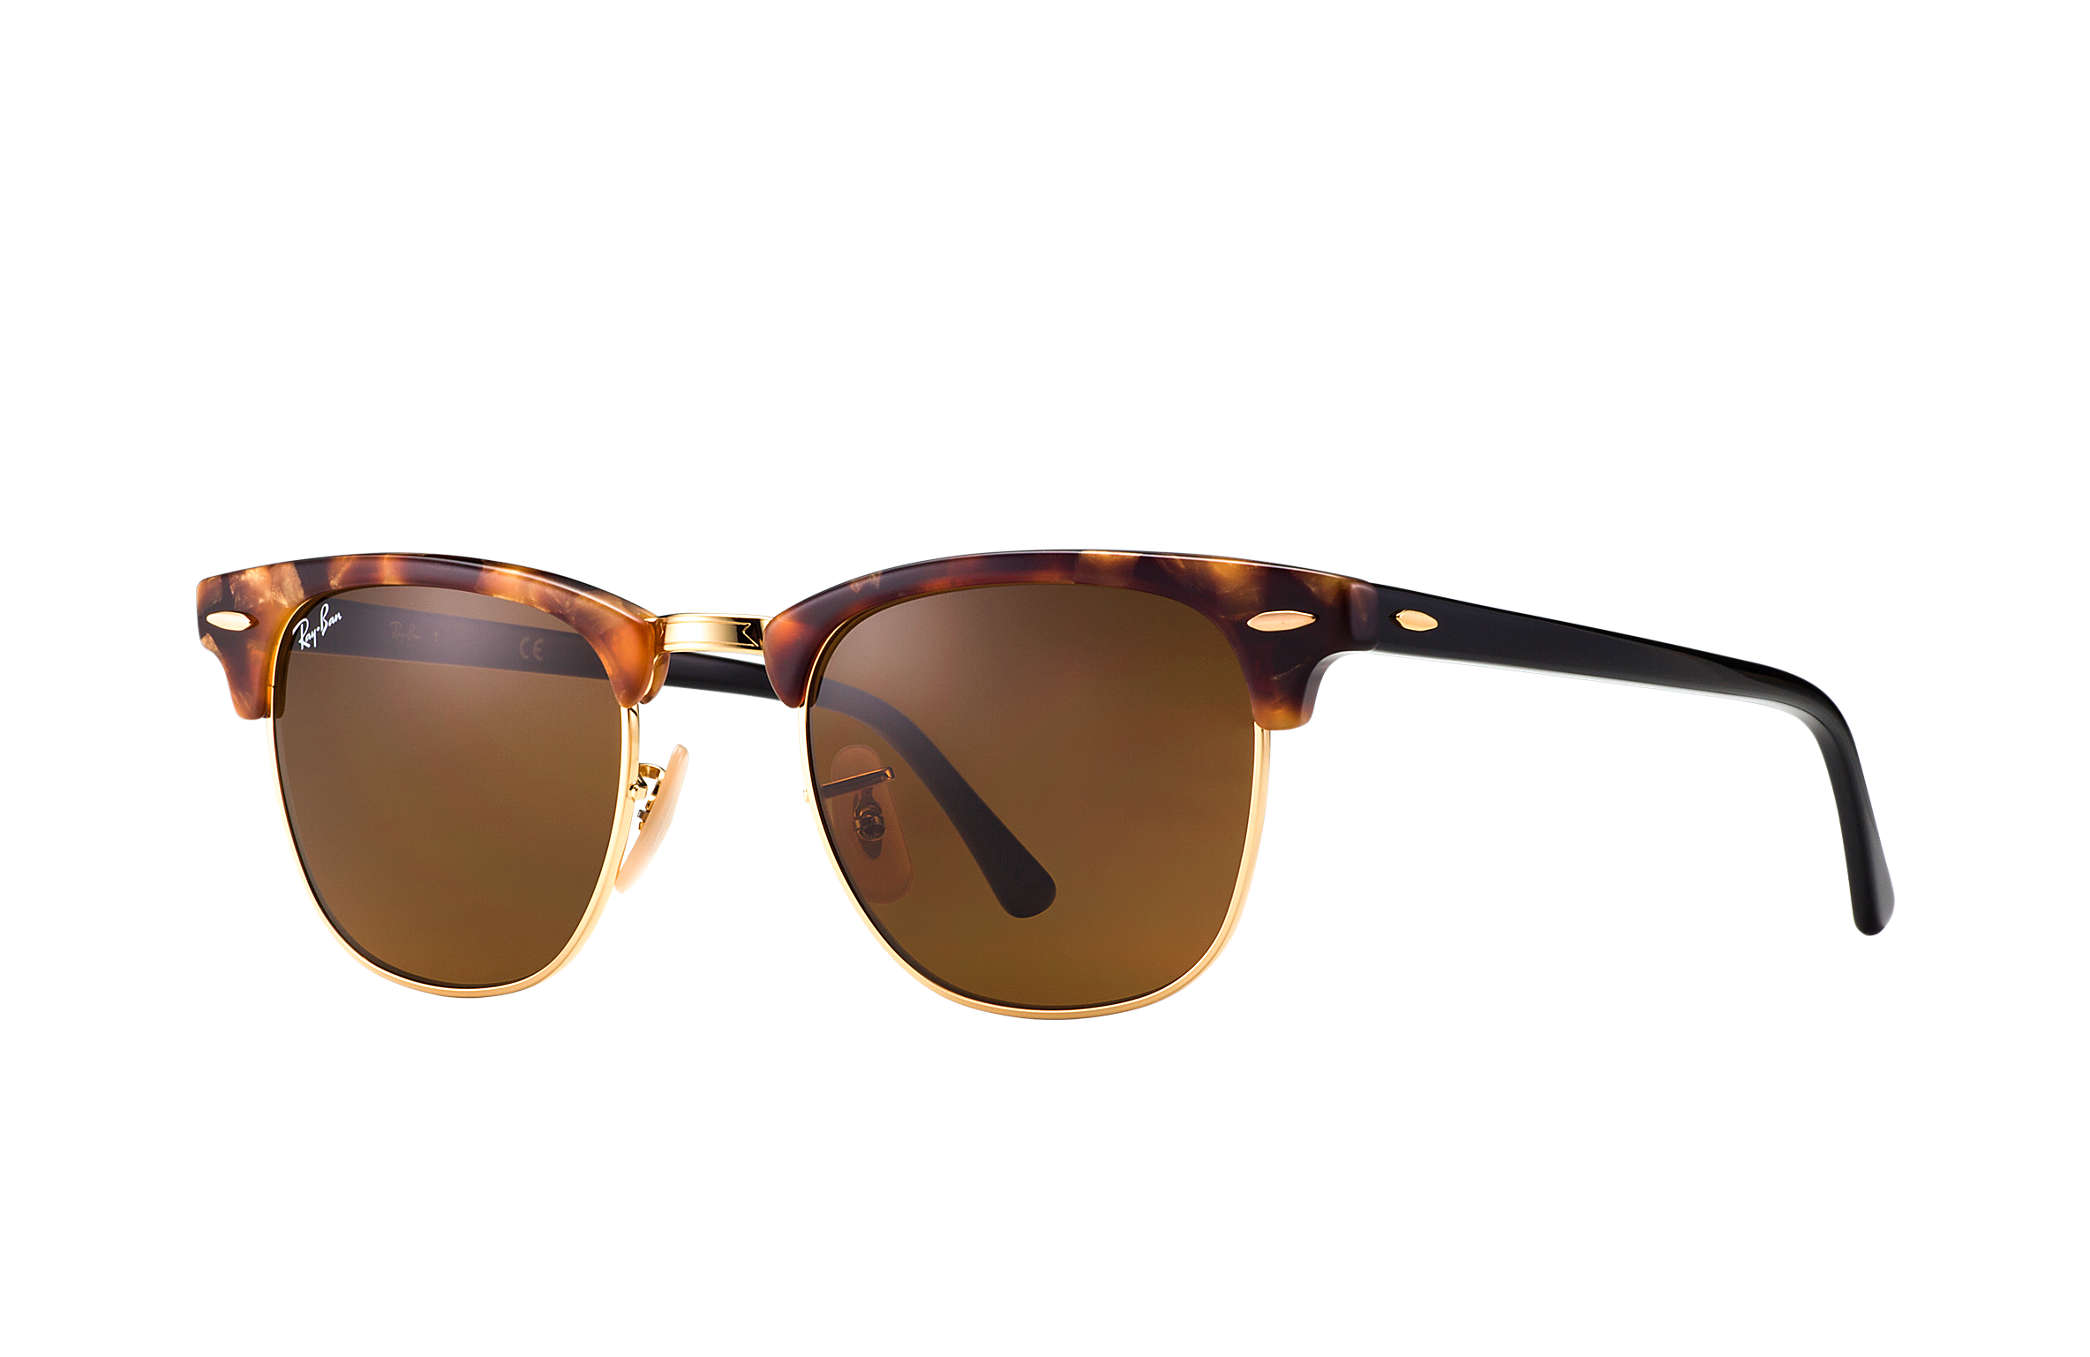 Ray Ban Clubmaster Fleck RB 3016 1160 size 51